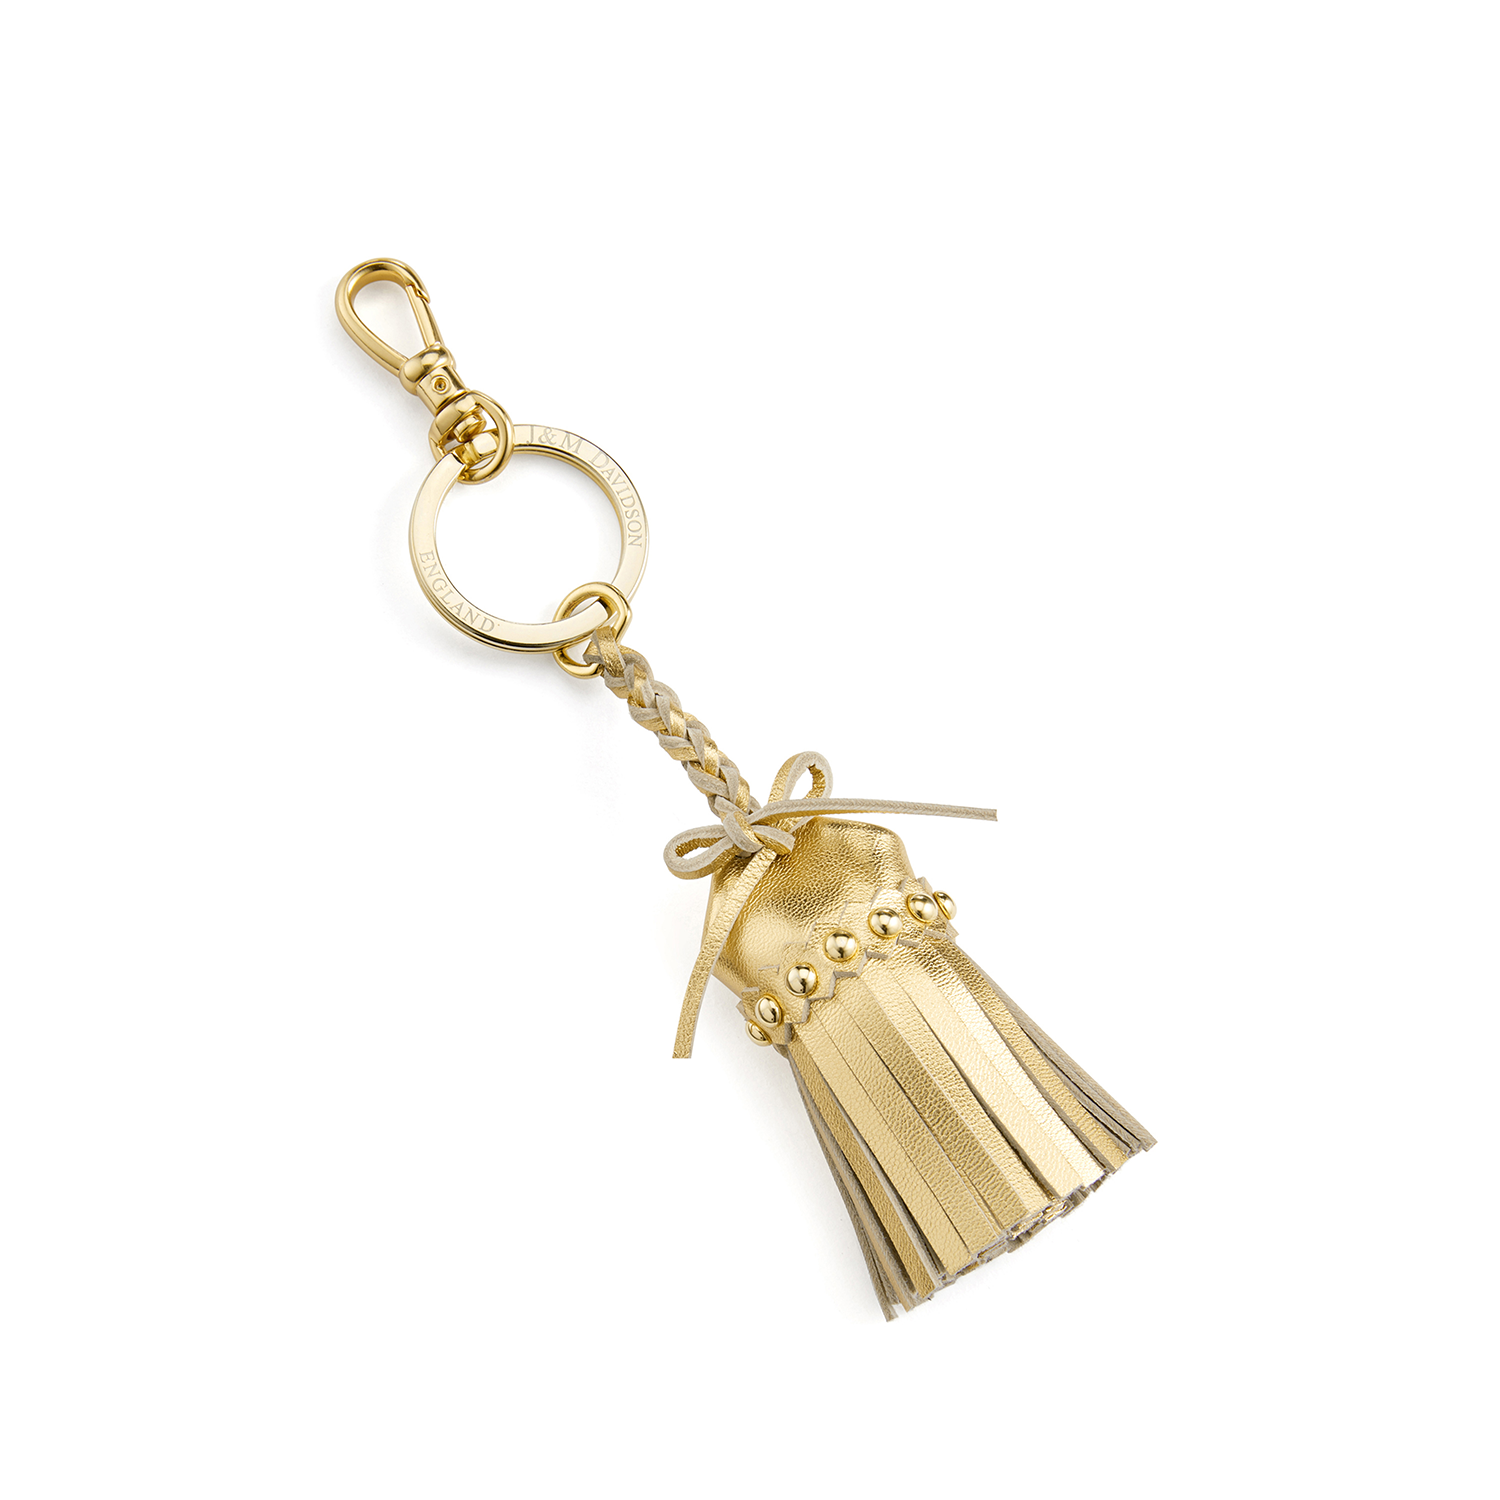 Tassel Keyring with Studs New Gold / メタリックカーフ